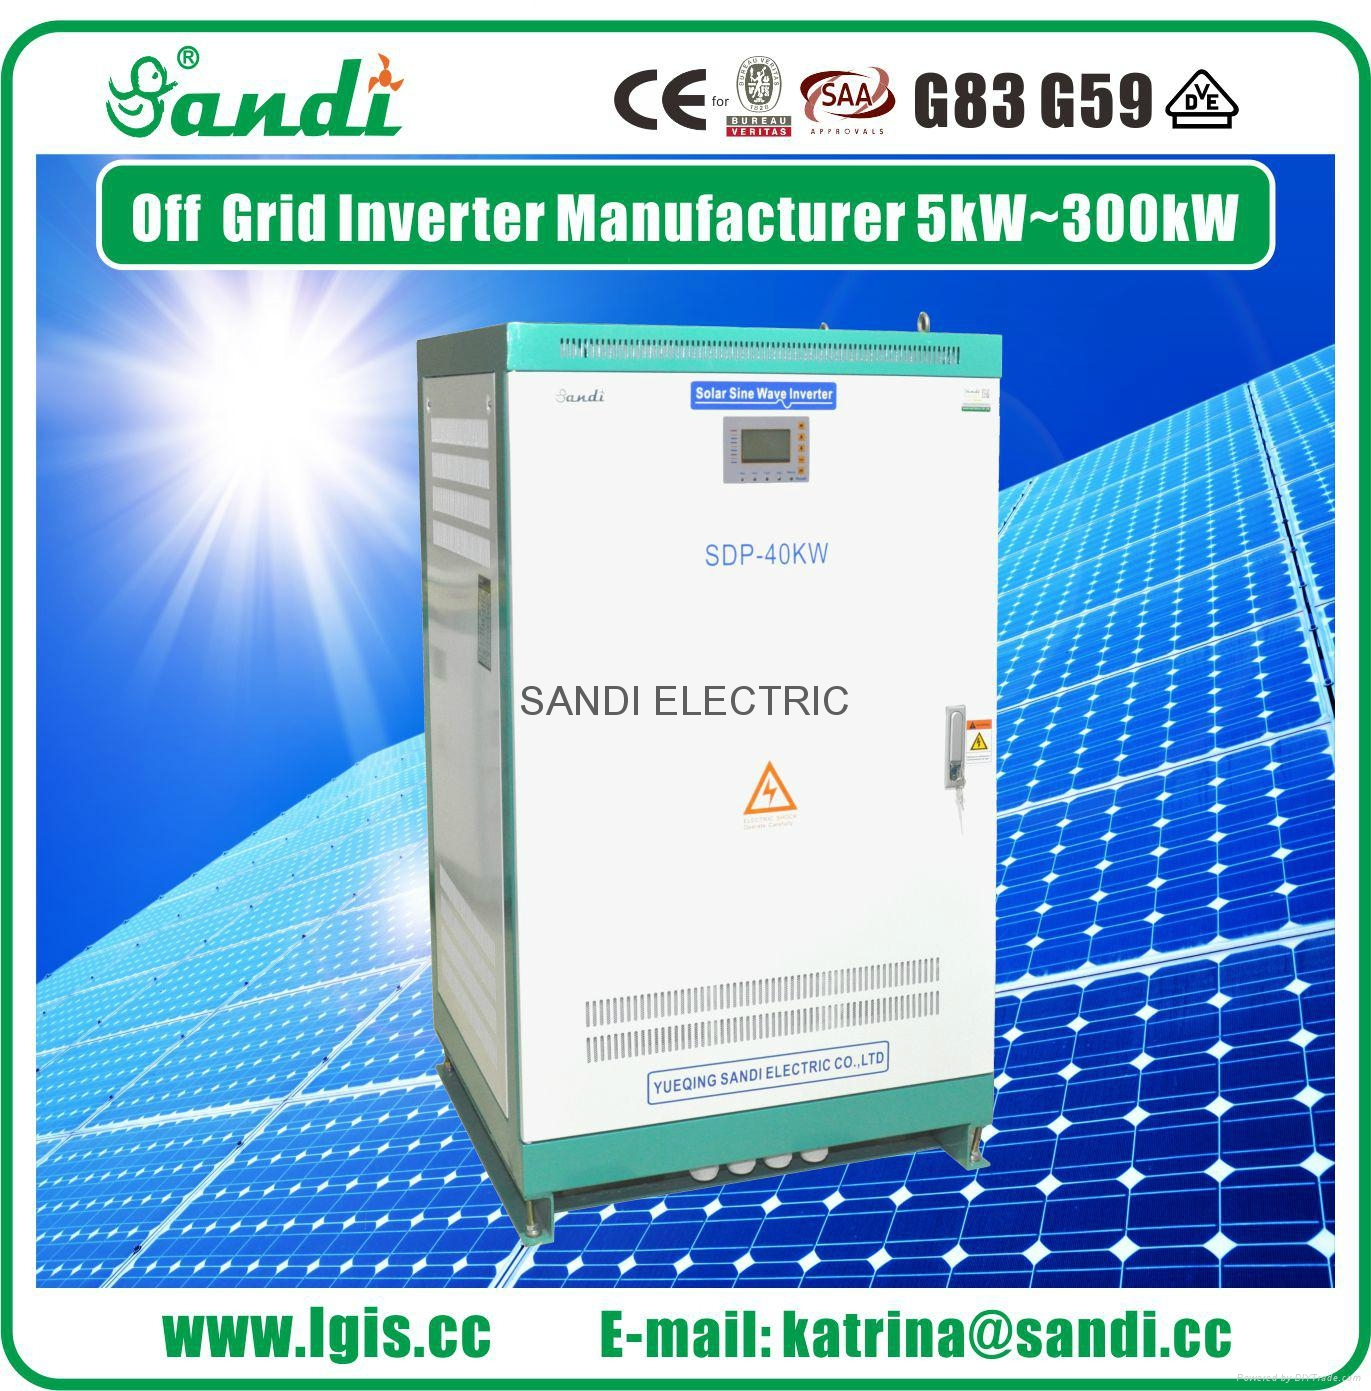 SANDI Power Inverter DC to AC 40KW 3 phase off grid solar inverter